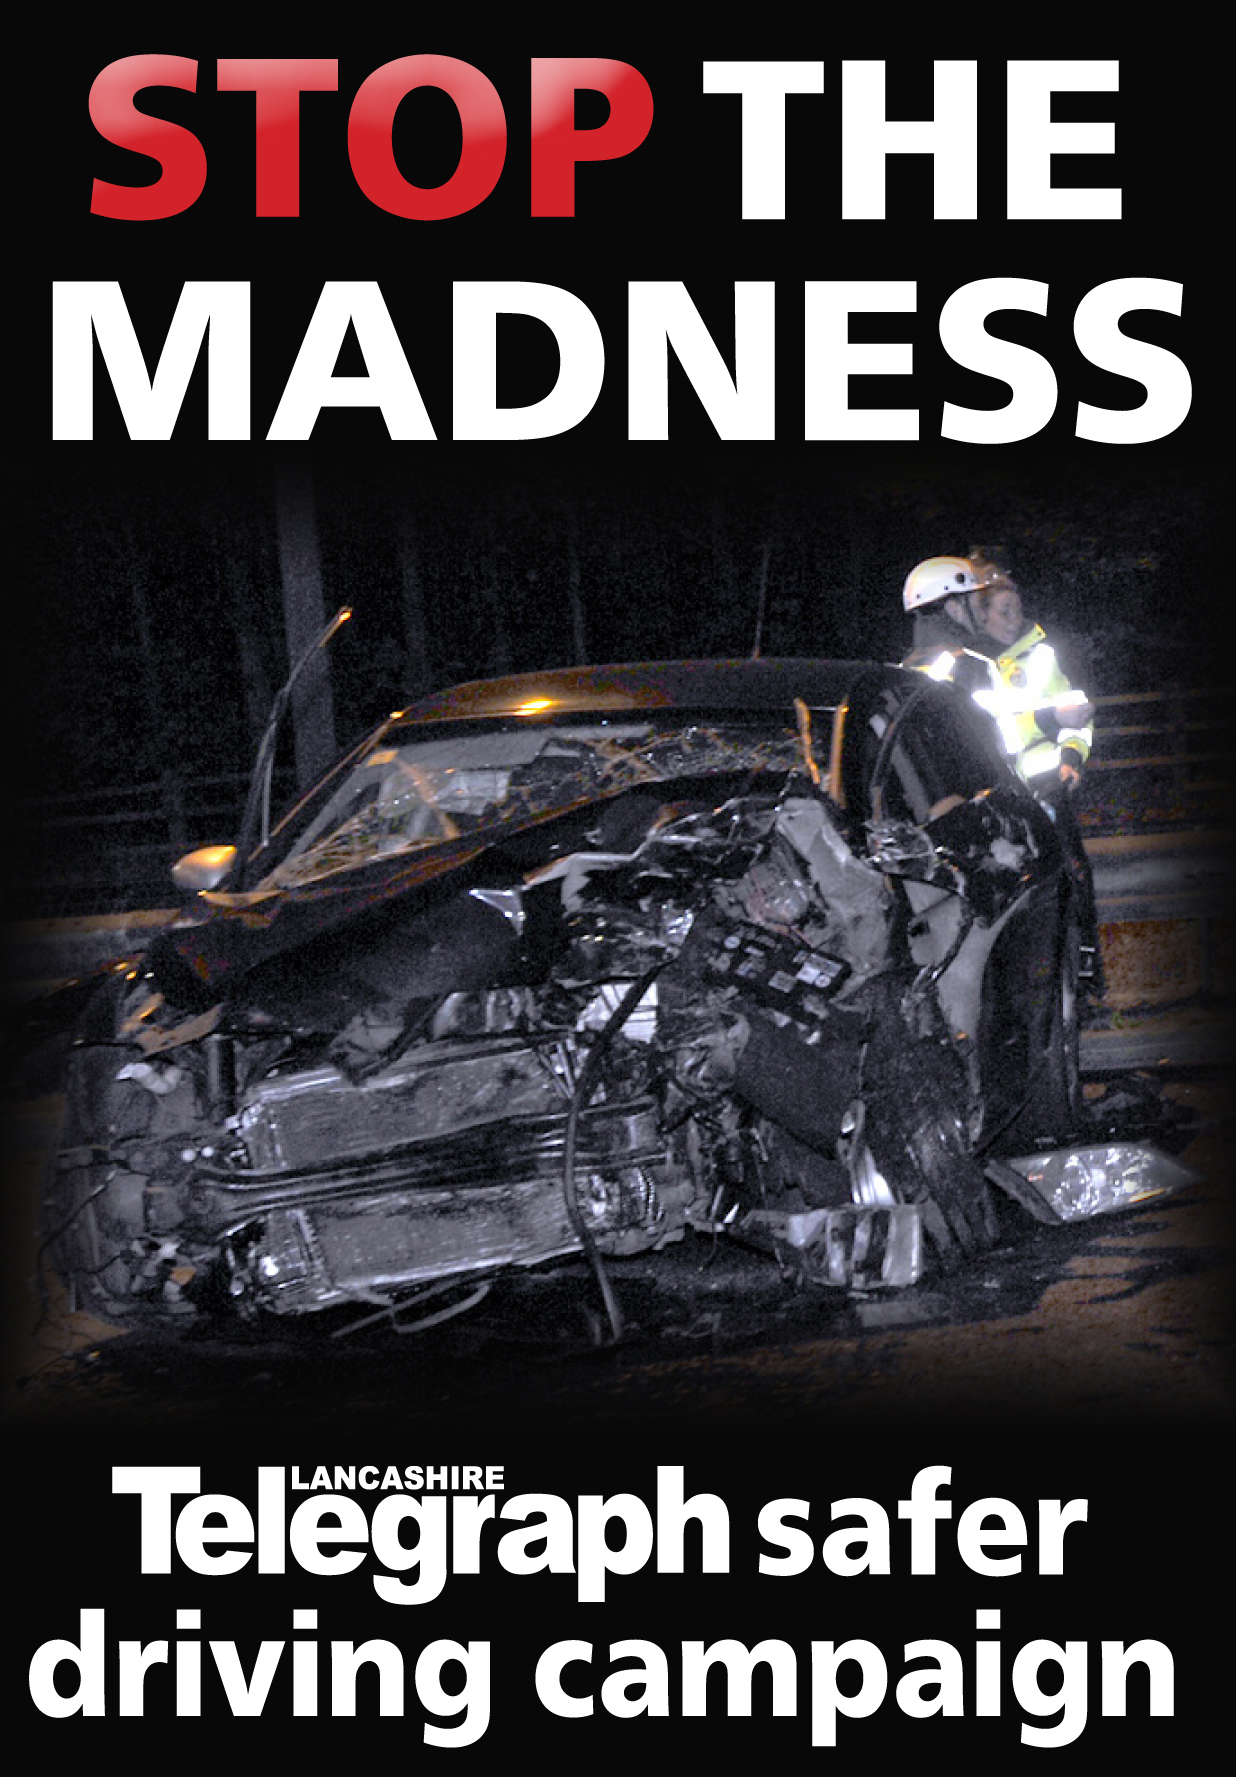 Stop the madness campaign logo.